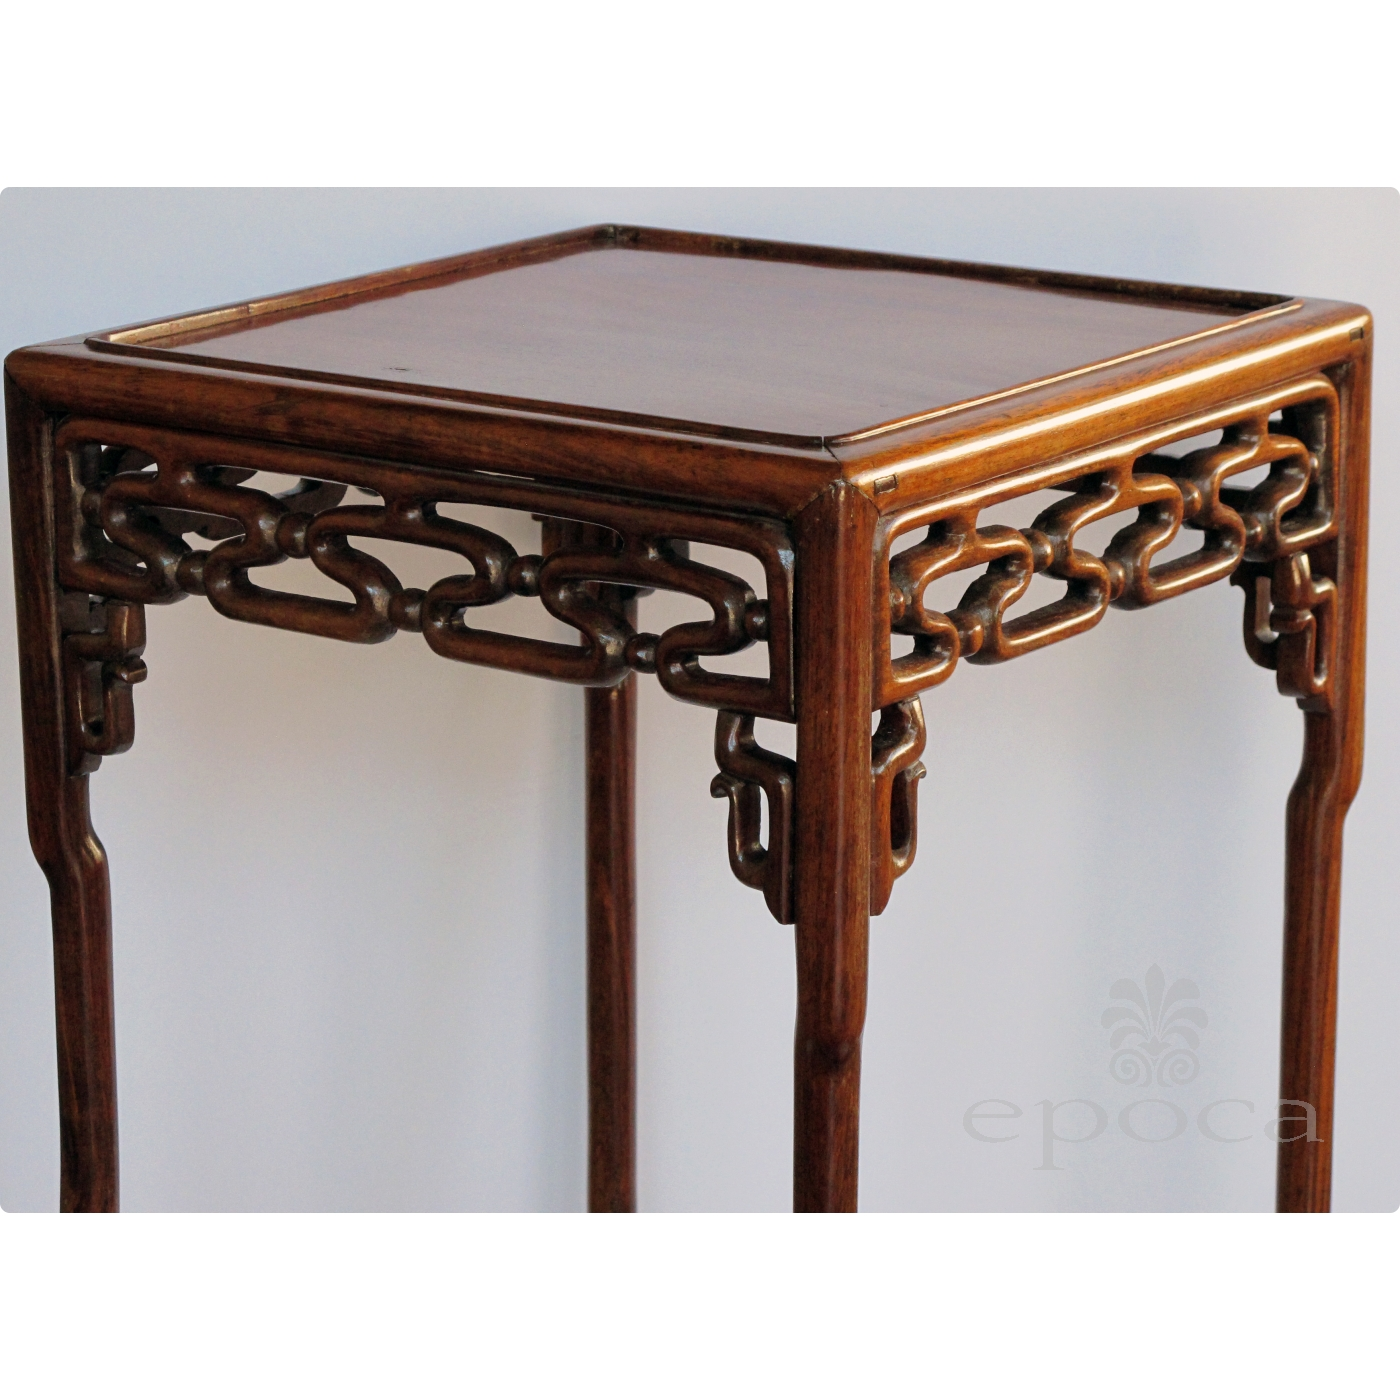 Antique square side table -  Richly Patinated Chinese Hongmu Wood Square Side Table With Stylized Openwork Cloud Scroll Apron And